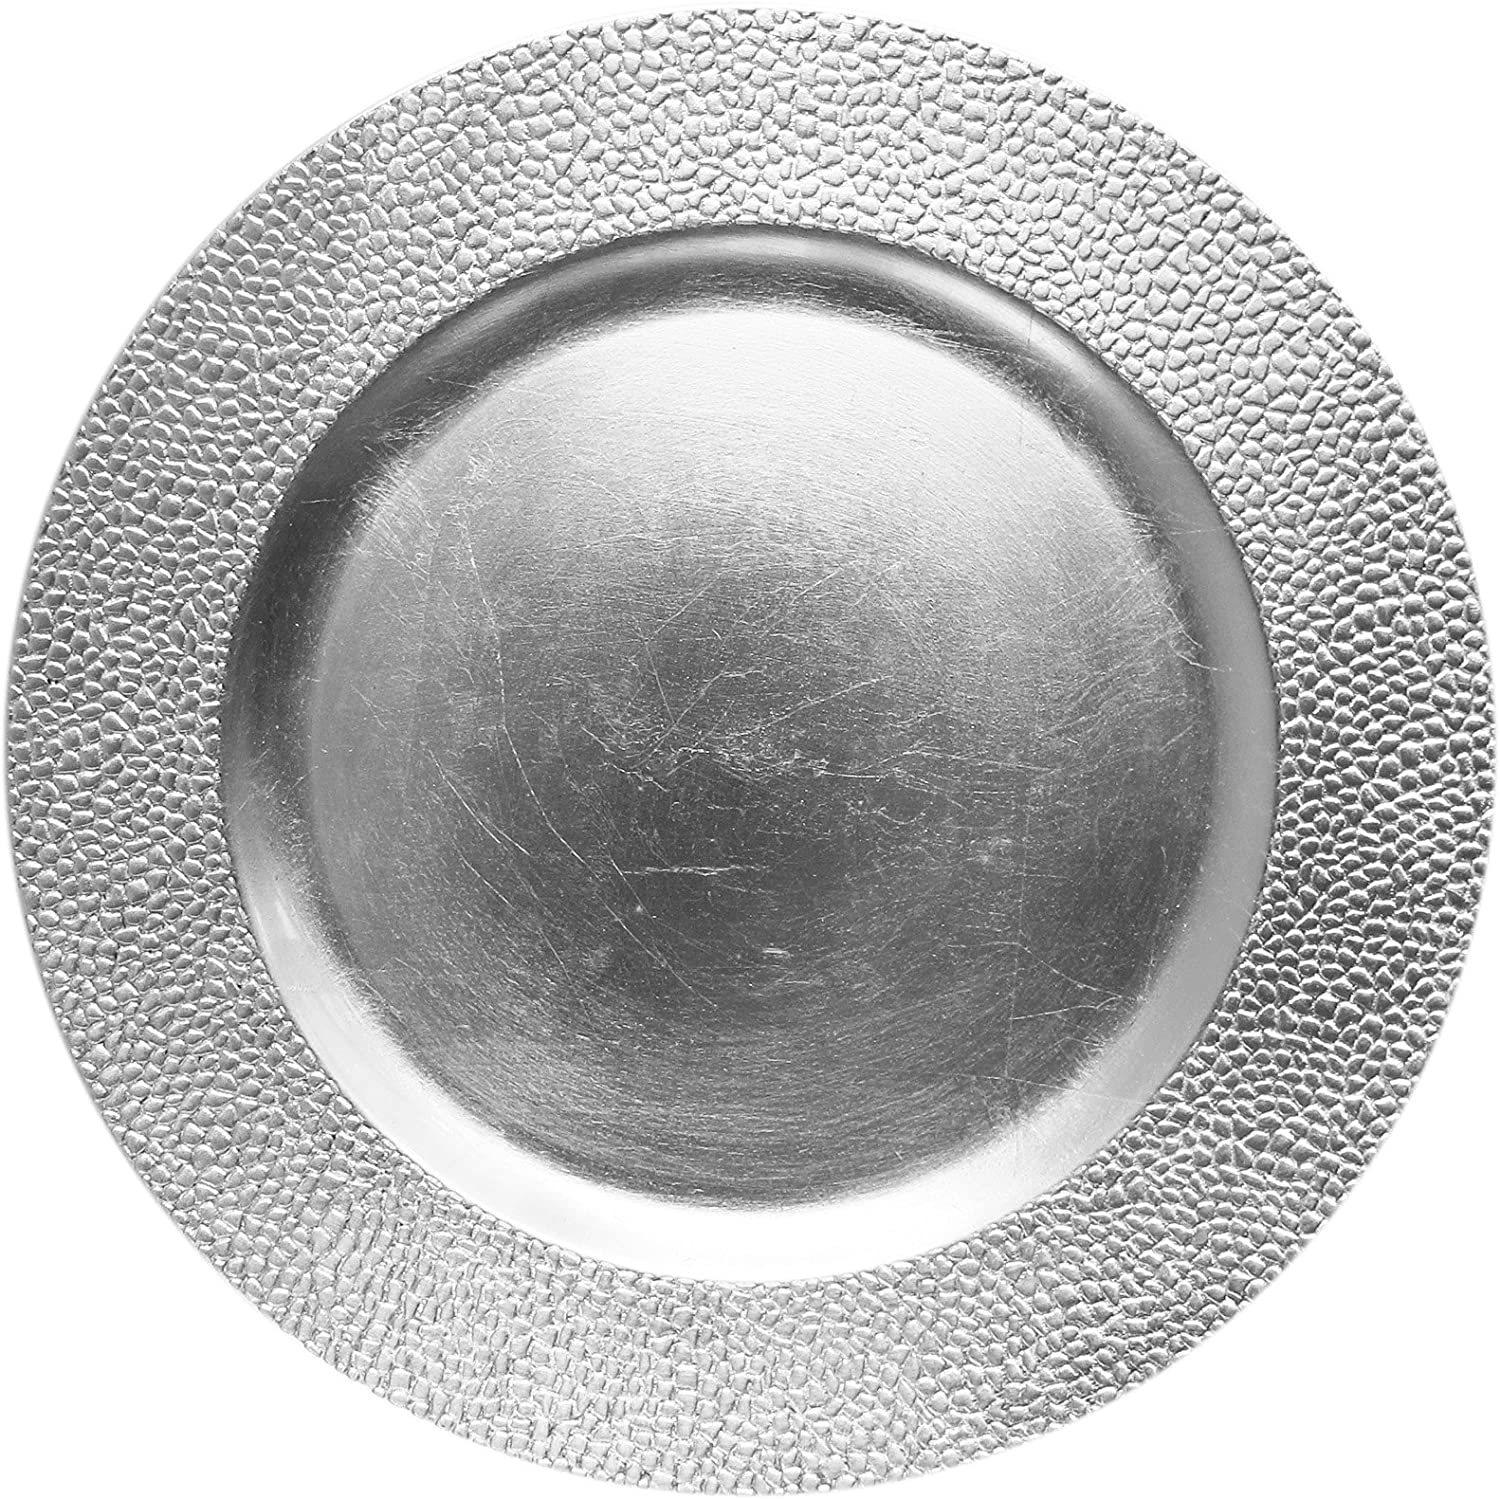 """ChargeIt by Jay Round Charger Large 13"""" Decorative Melamine Service Plate for Home & Professional Fine Dining-For Upscale Catering Events, Dinner Parties, & Weddings, Silver"""